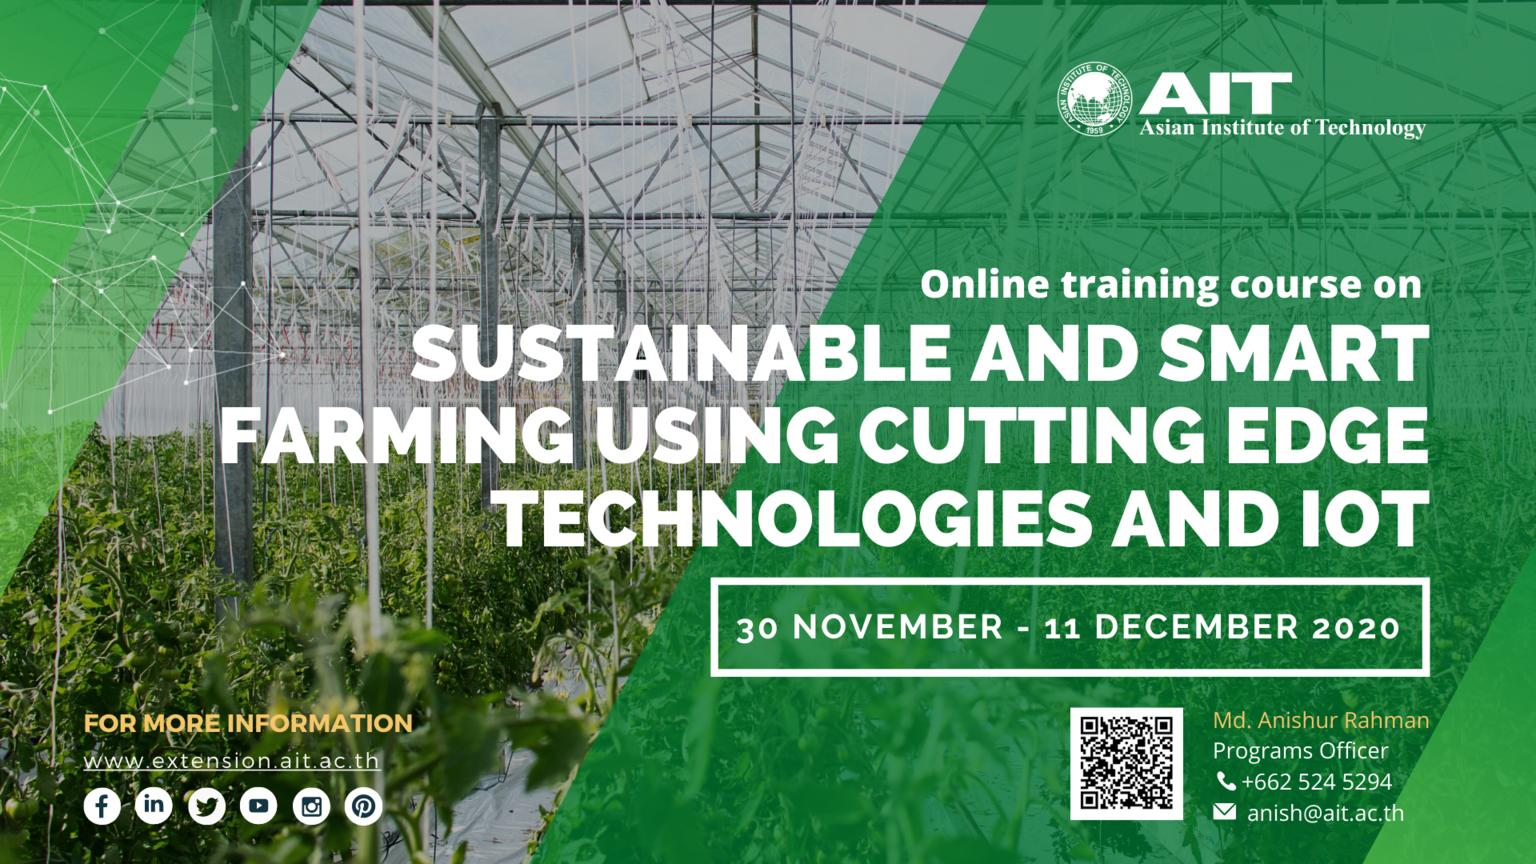 3_Sustainable and Smart Farming using Cutting Edge Technologies and IoT